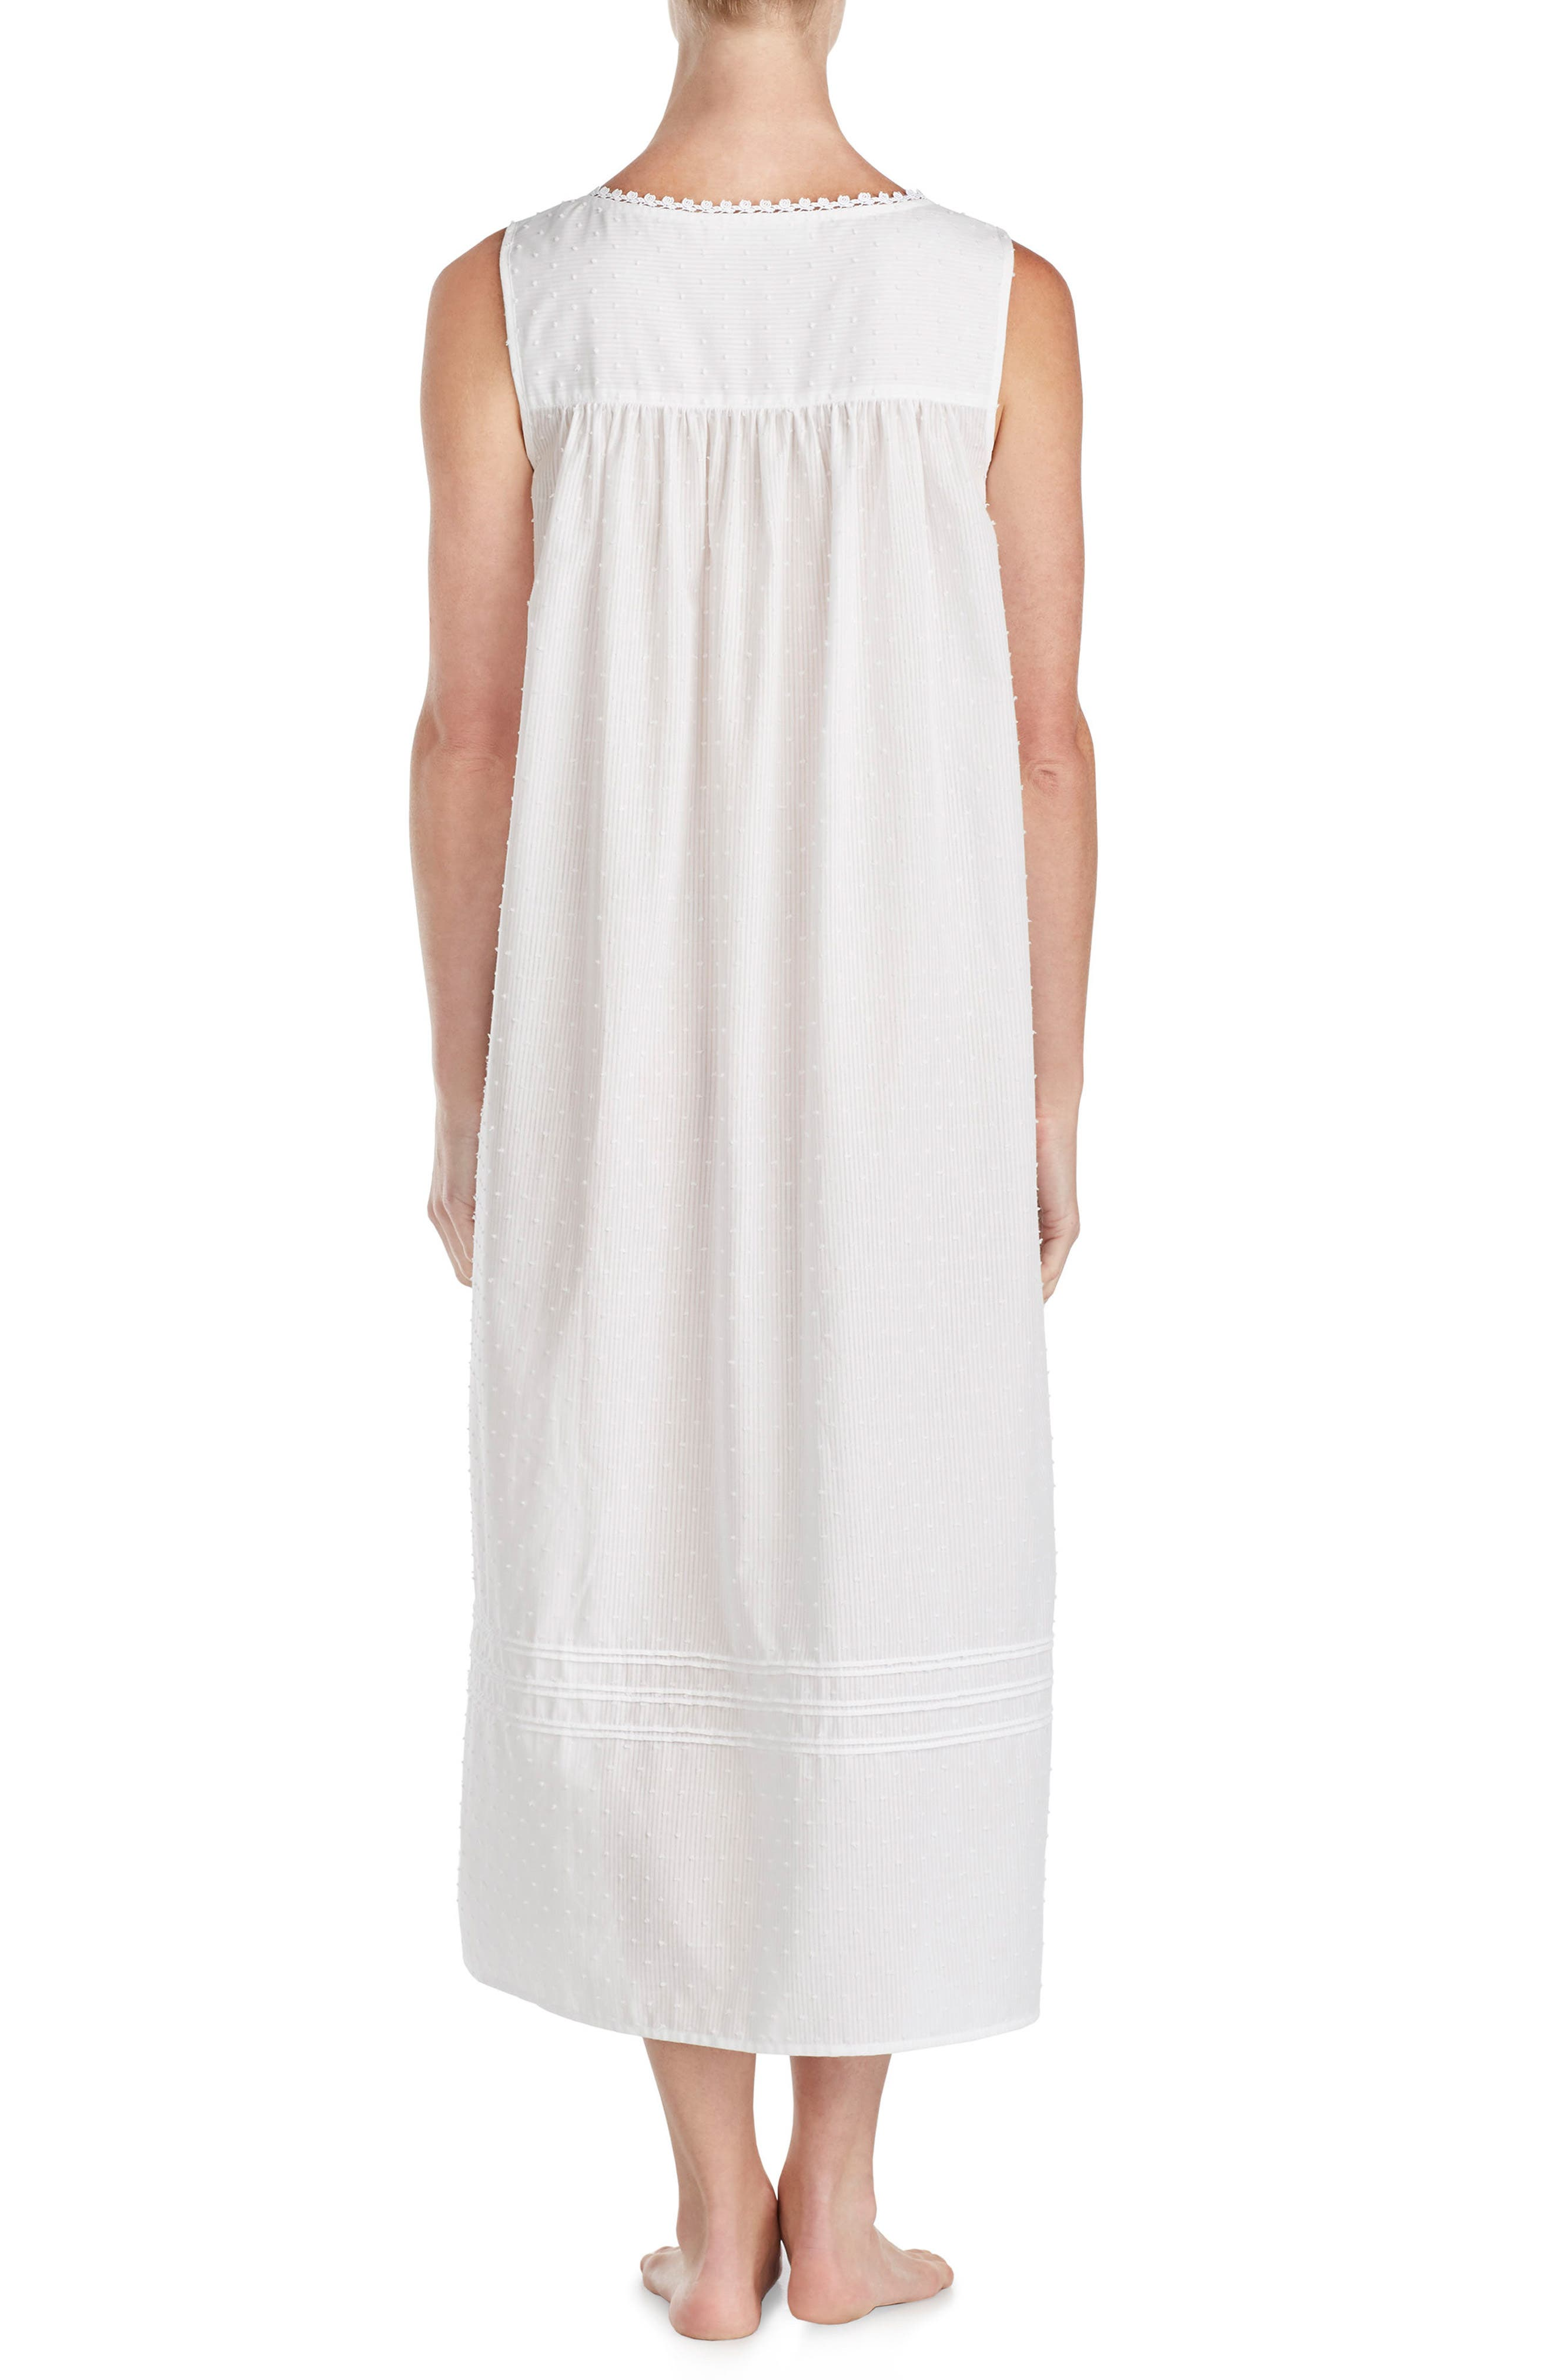 Swiss Dot Nightgown,                             Alternate thumbnail 2, color,                             White